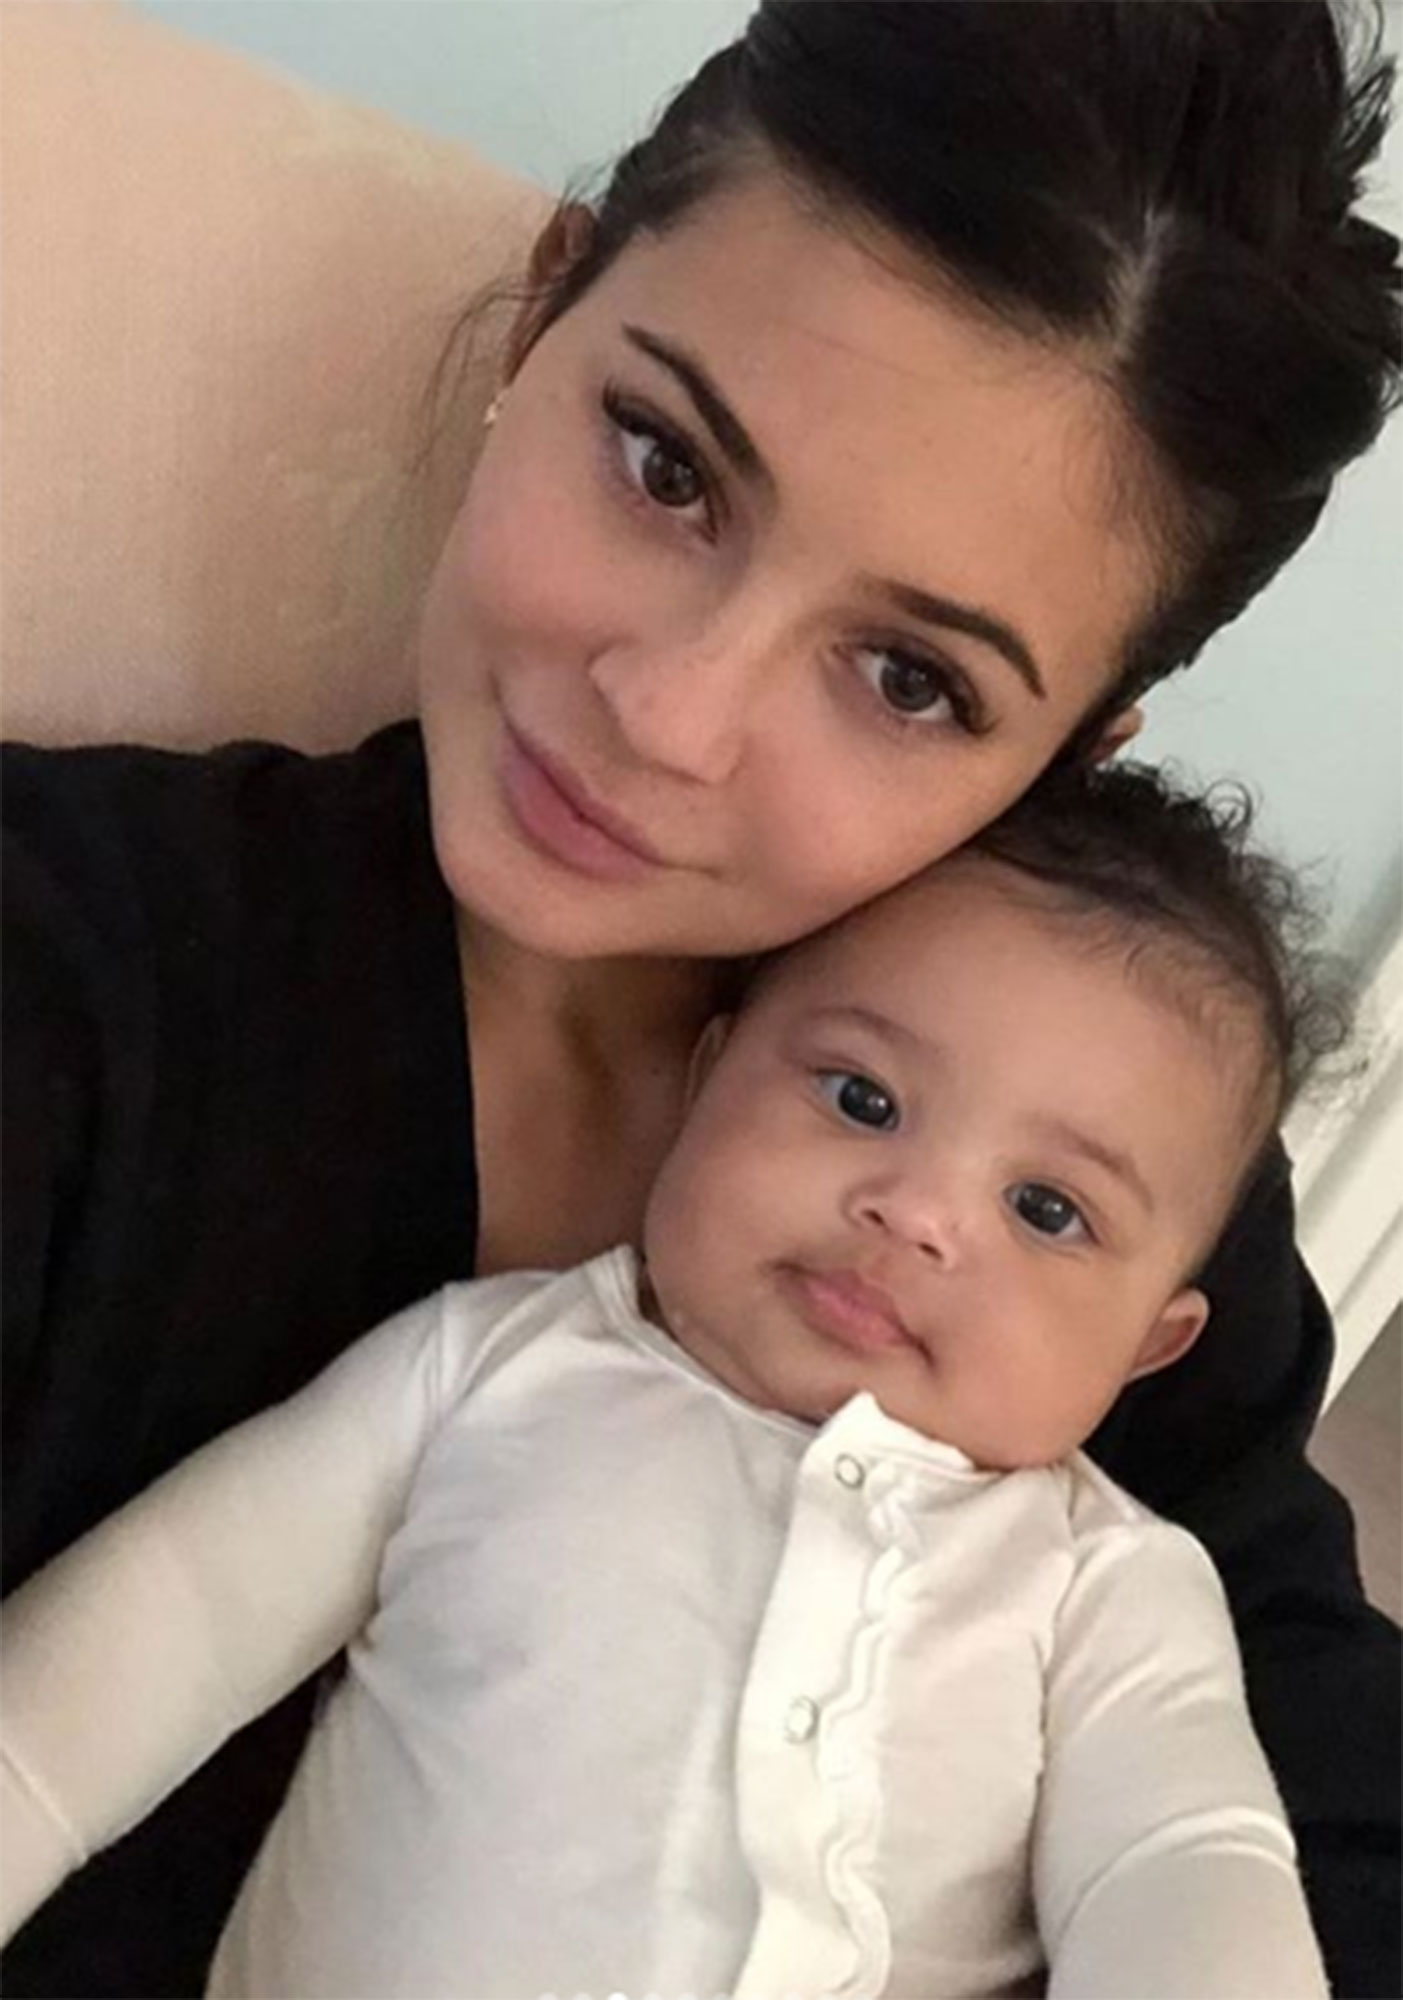 Kylie Jenner Stormi Birthday Presents - Kylie Jenner with daughter, Stormi.